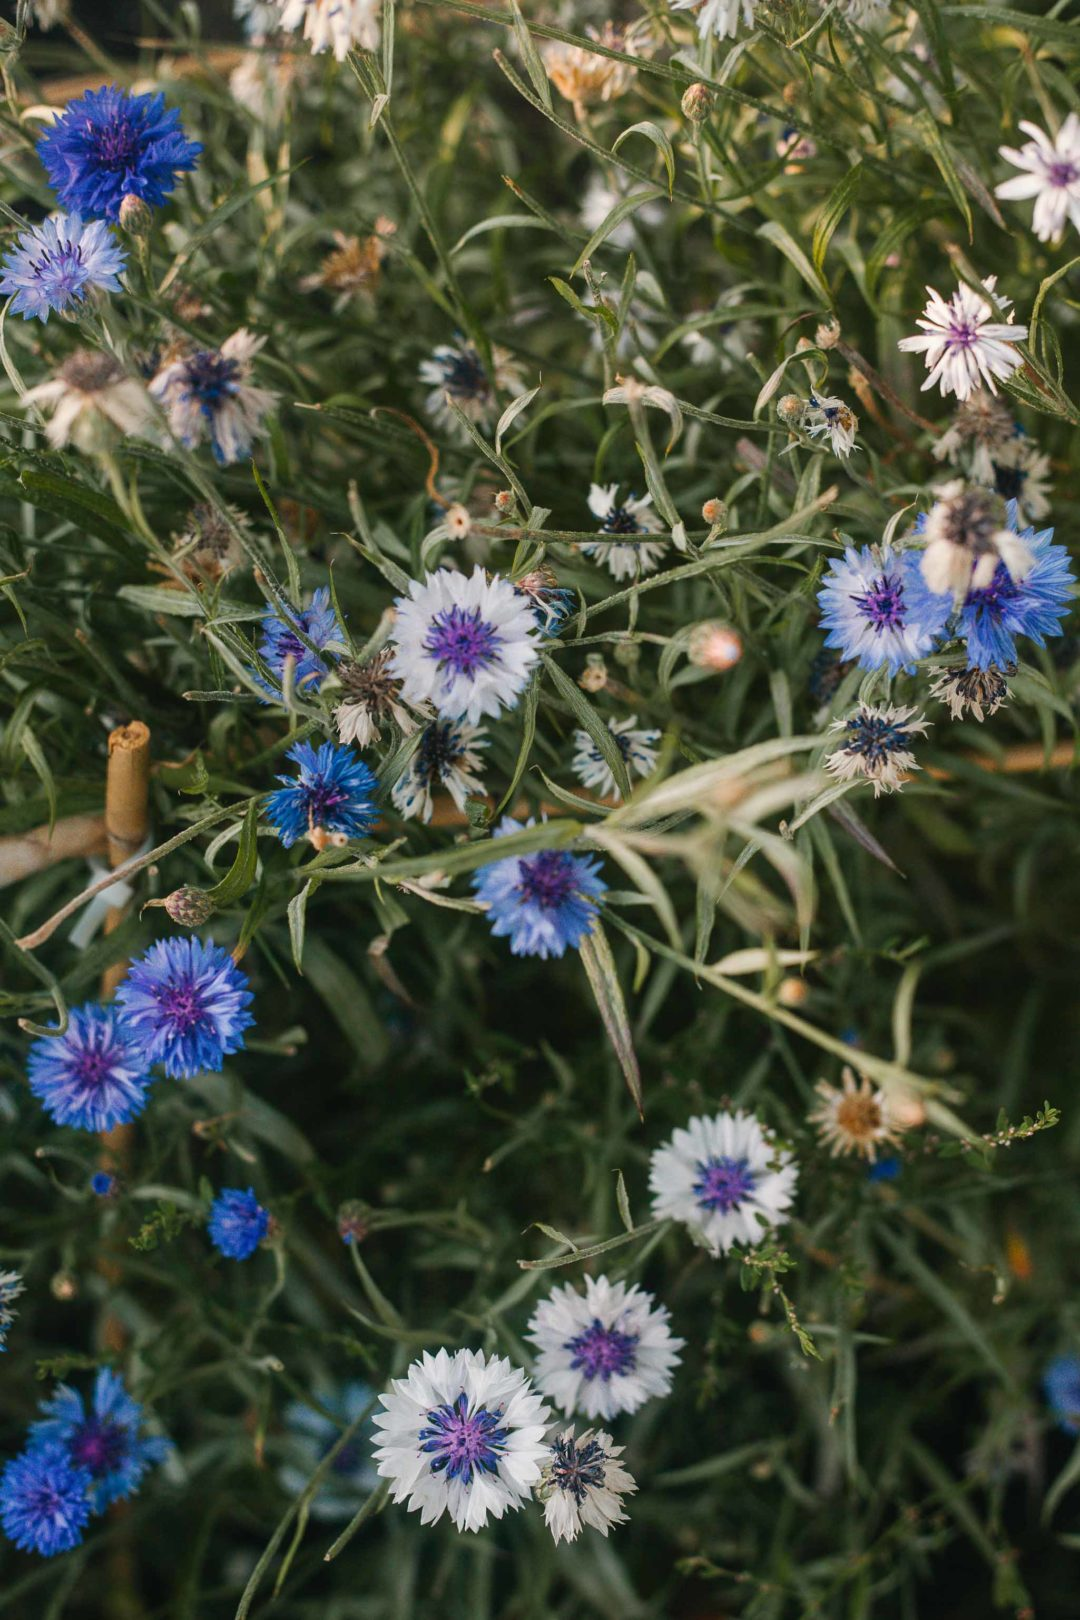 Bachelor buttons (corn flowers) in a garden